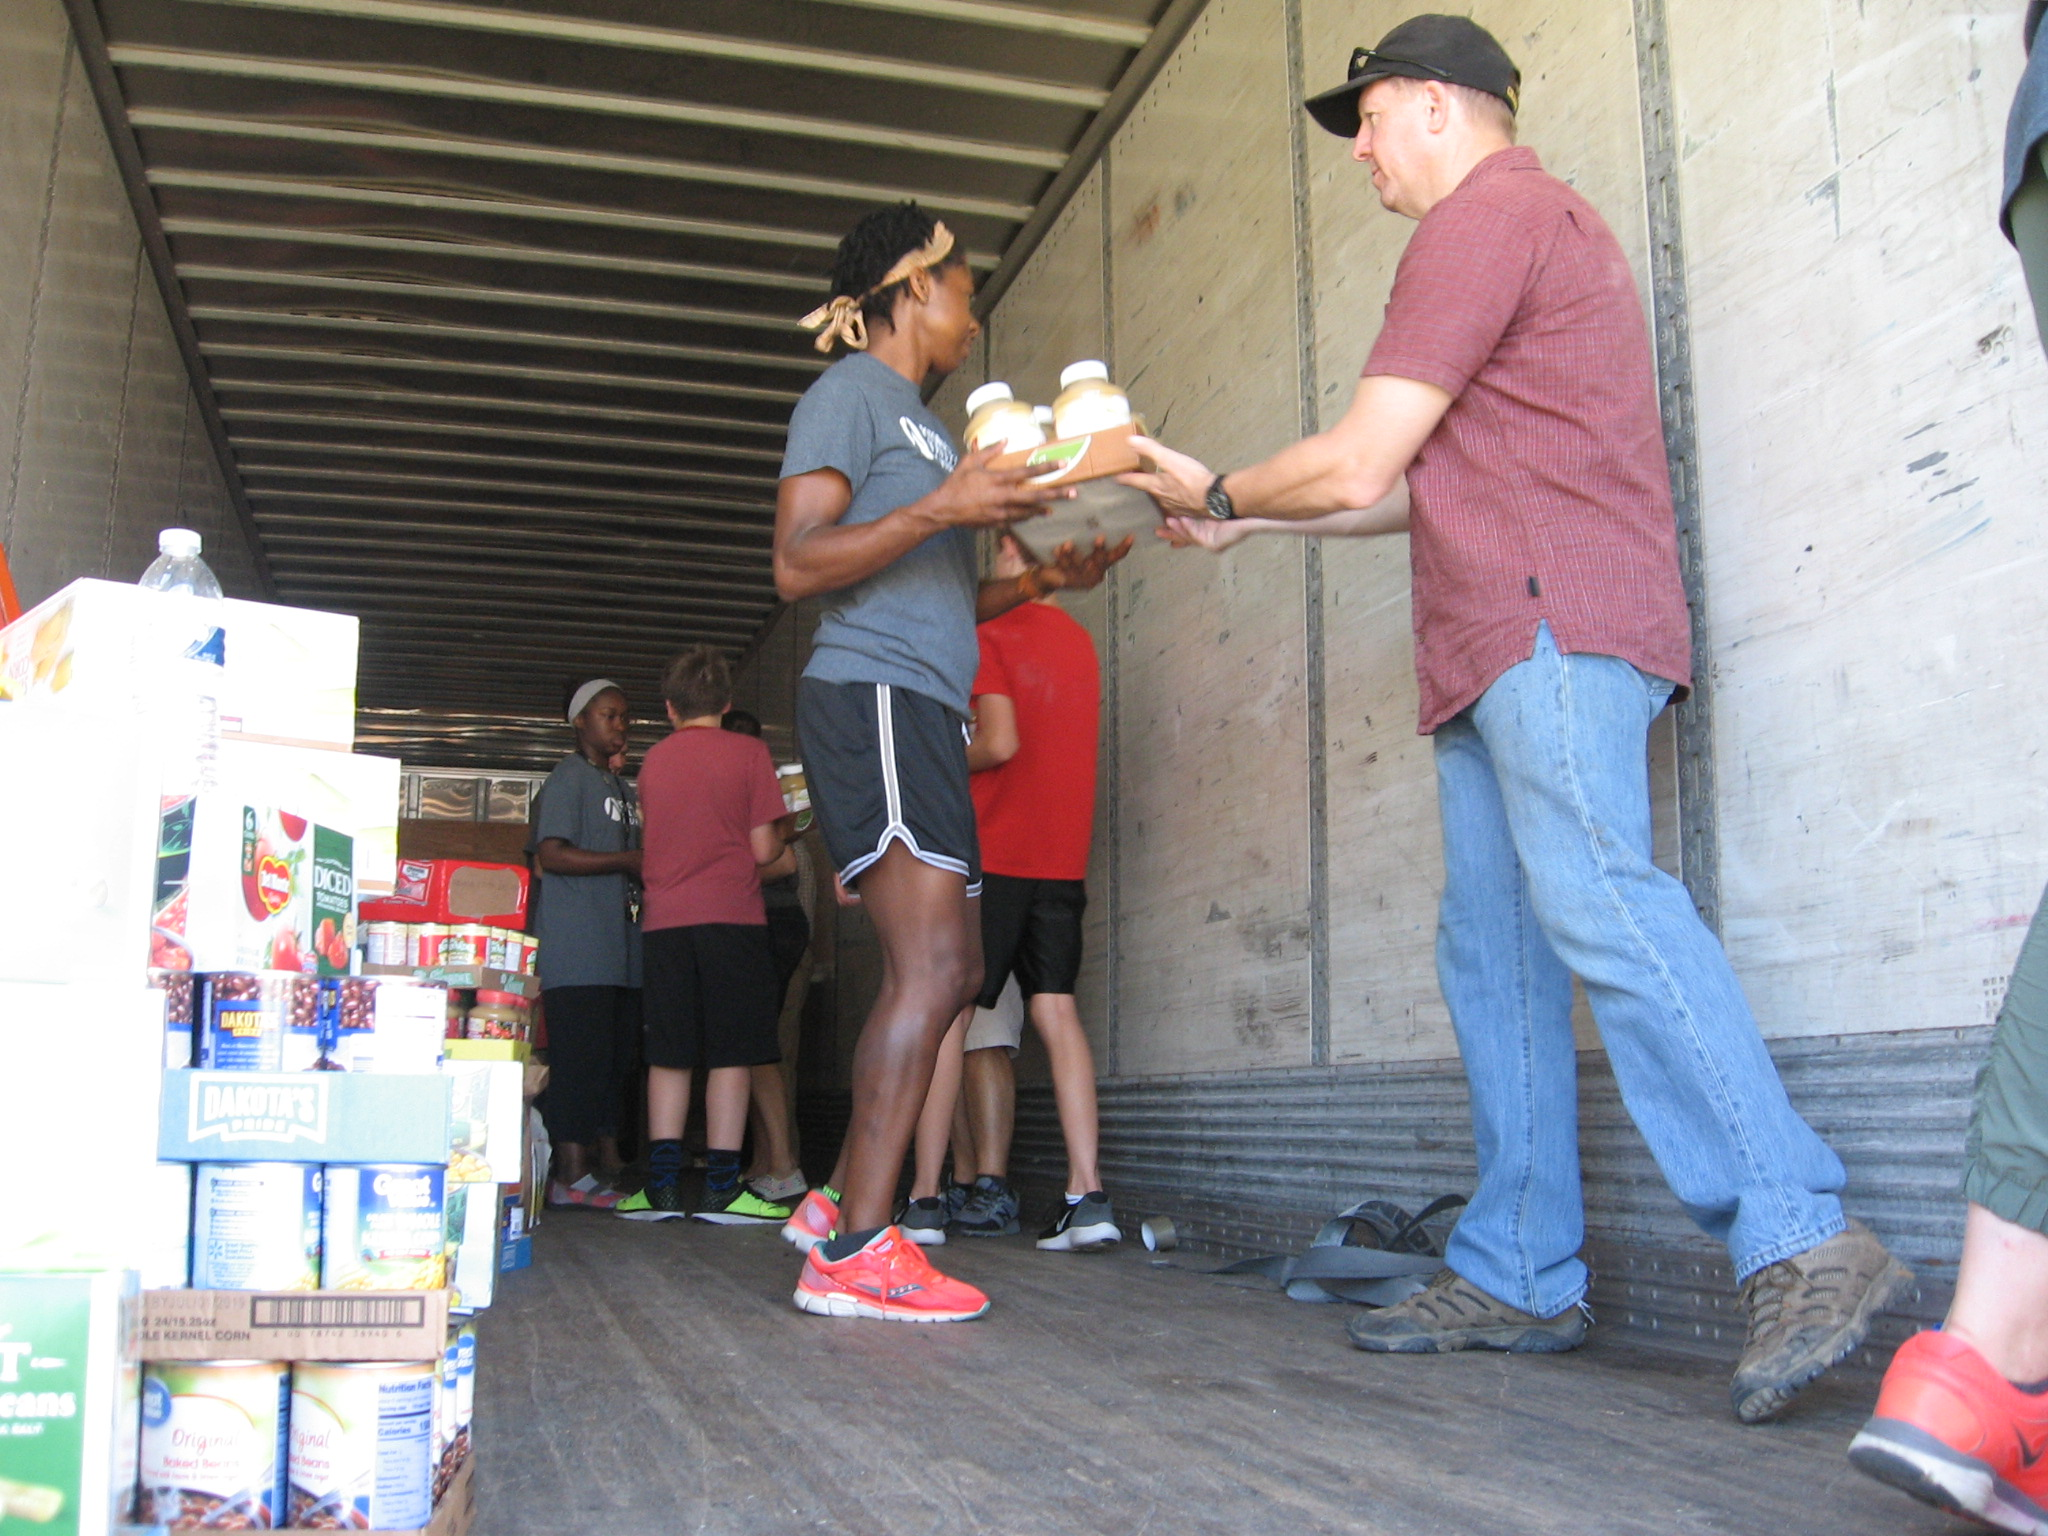 Teams work to load donated items into truck